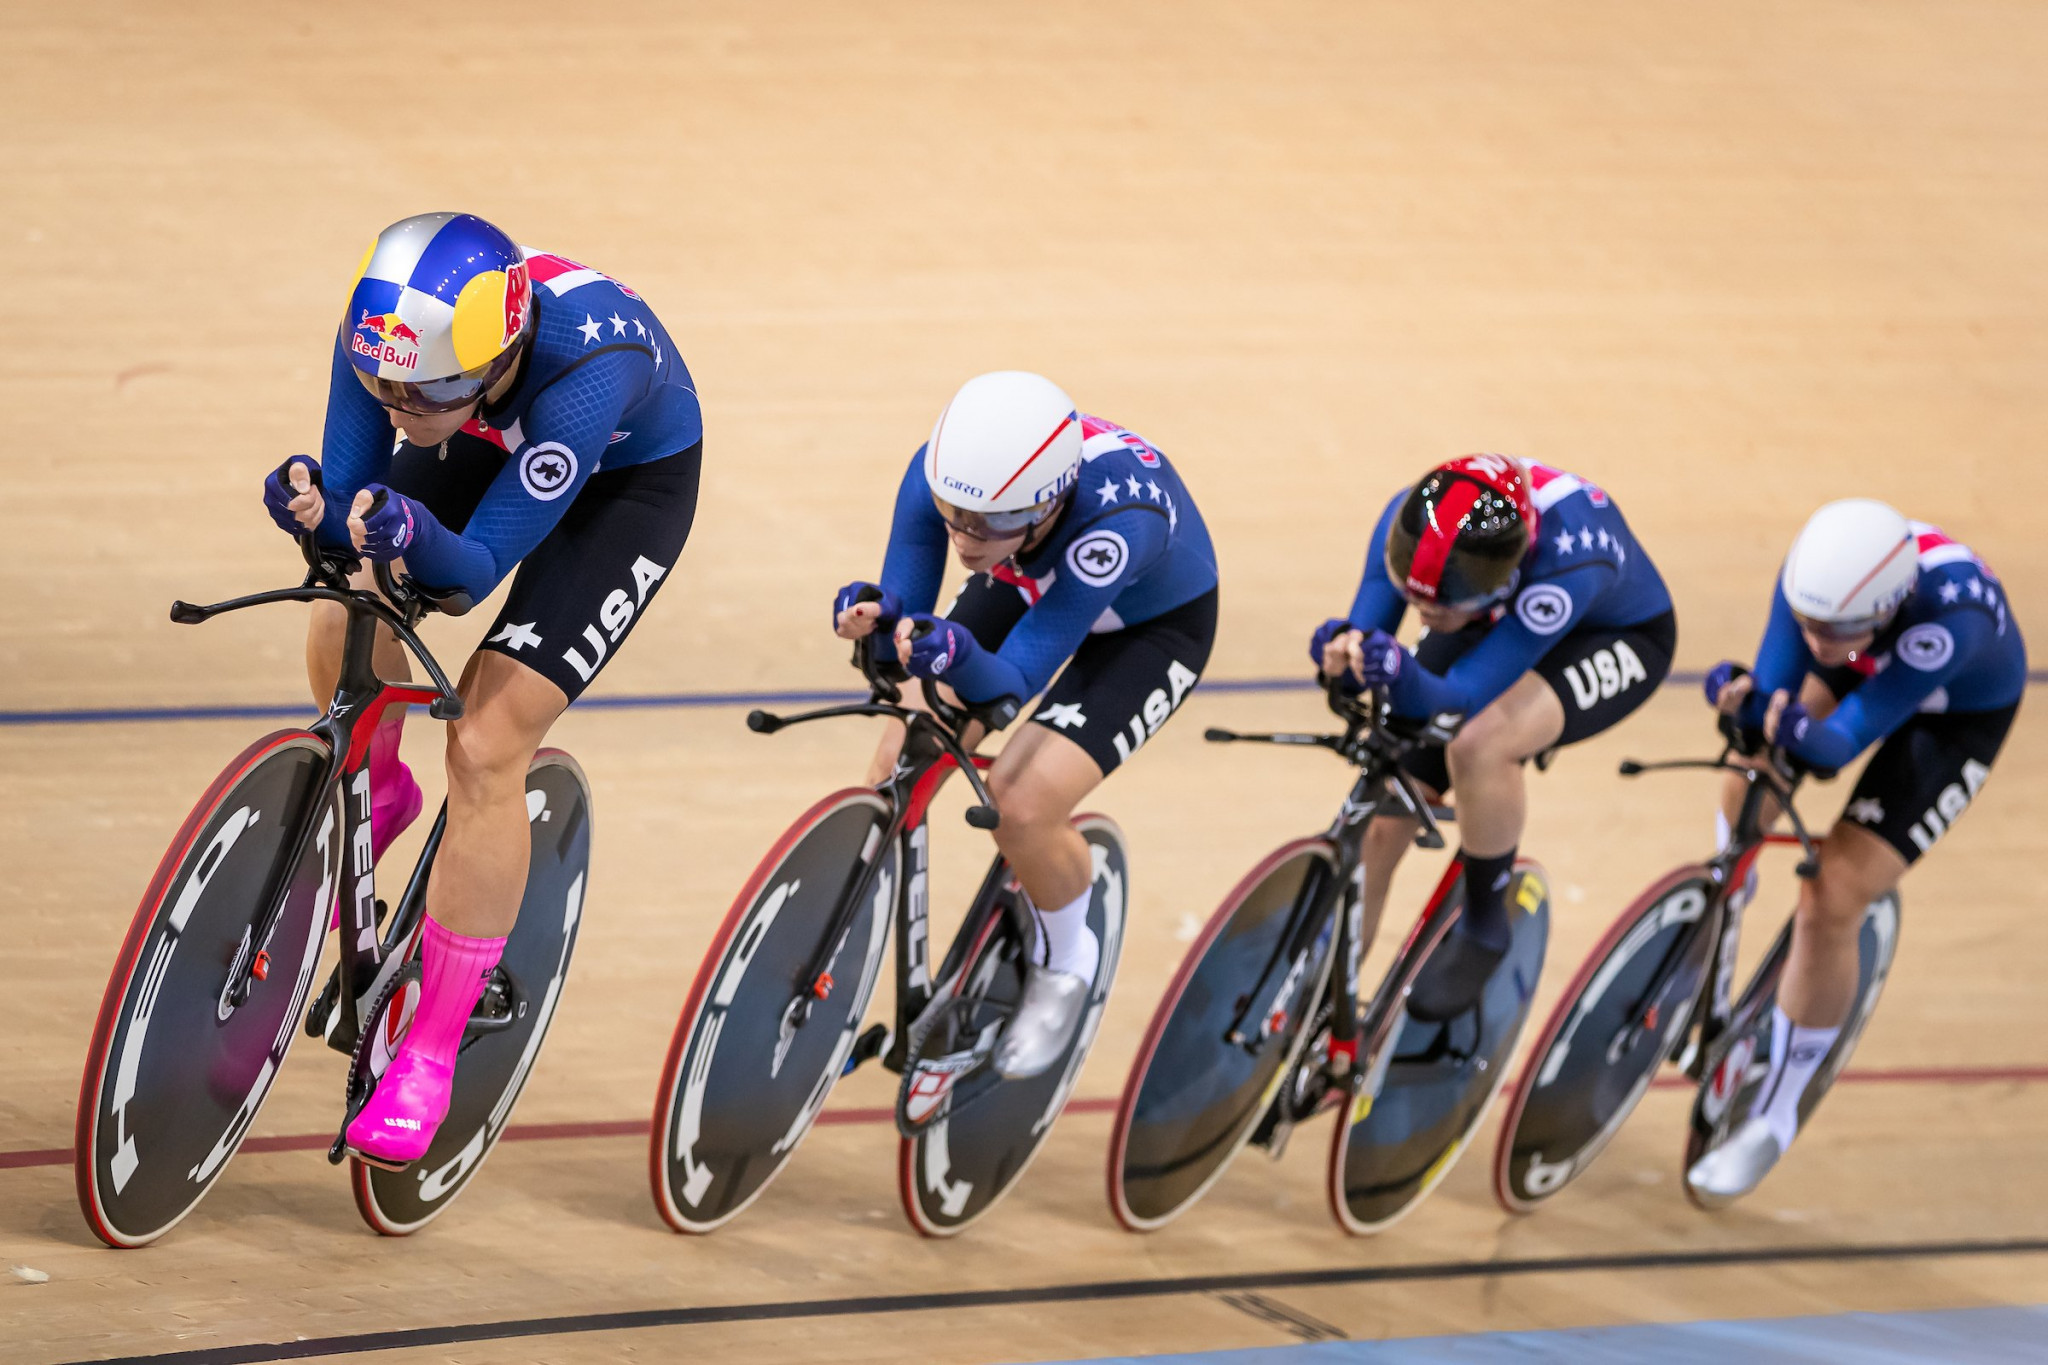 United States impress with women's team pursuit victory at Track Cycling World Cup